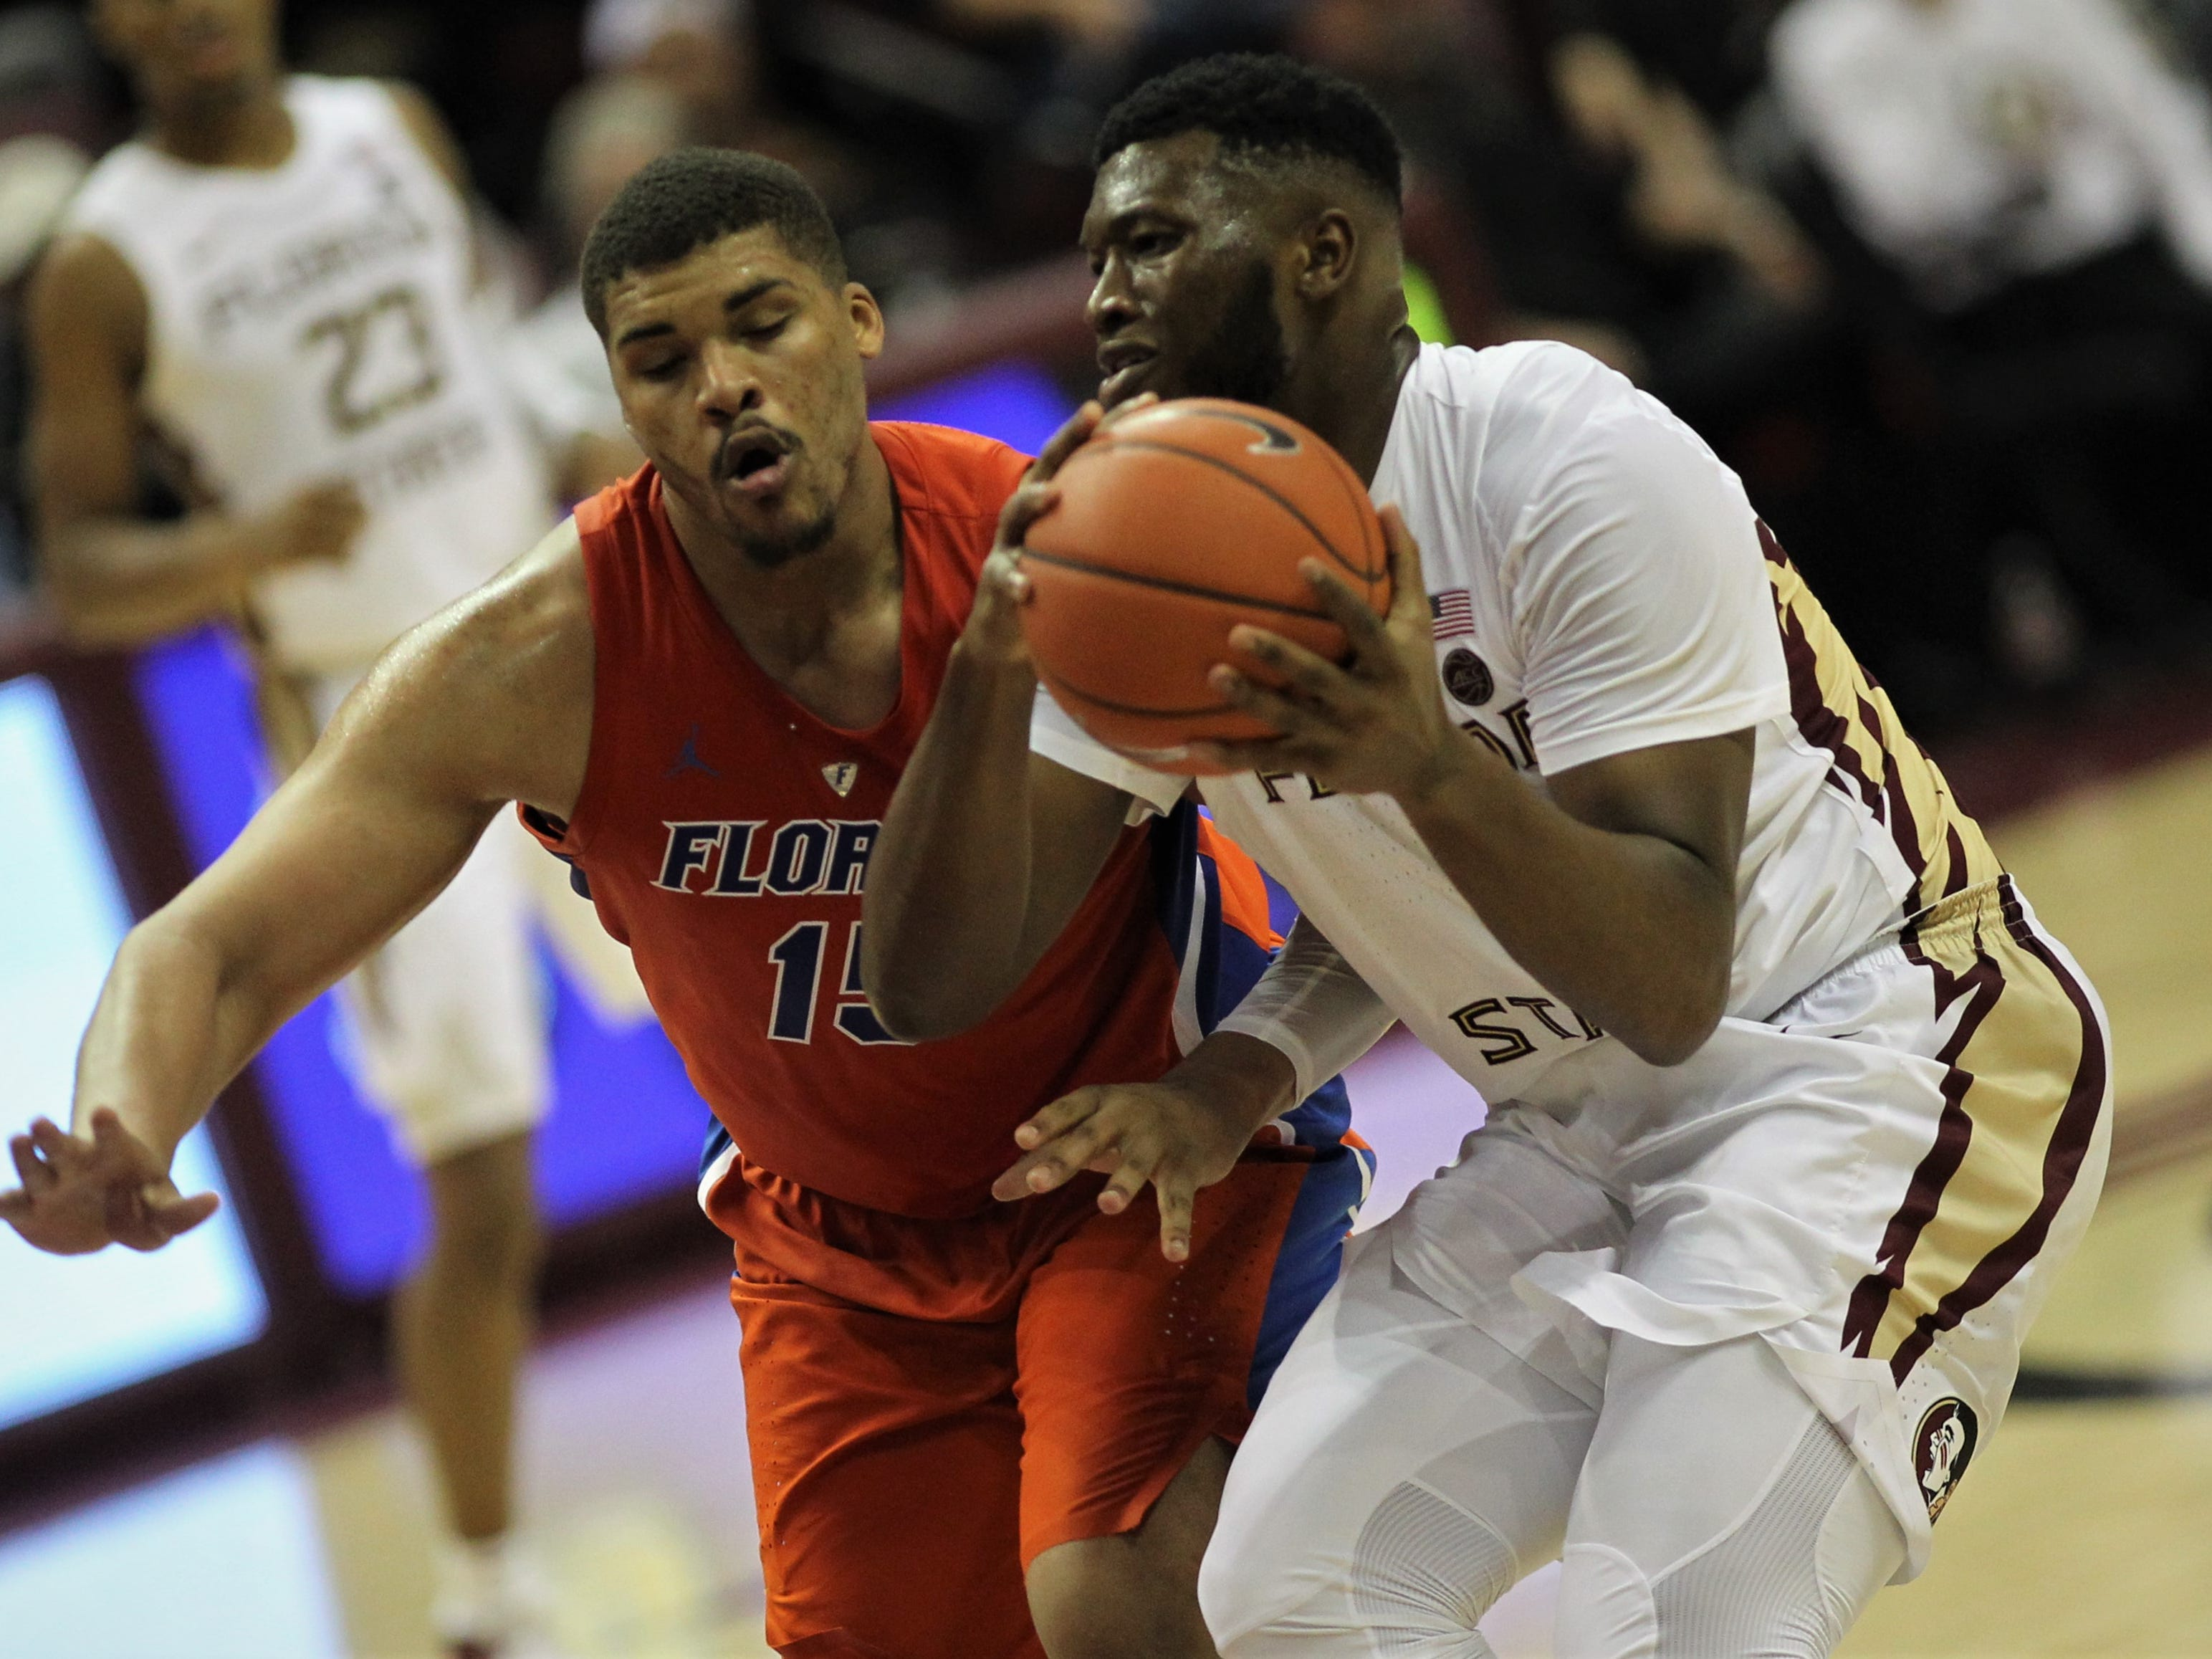 Florida State freshman Raiquan Gray pump fakes in the paint against Florida during the Sunshine Showdown game Tuesday at the Tucker Civic Center.